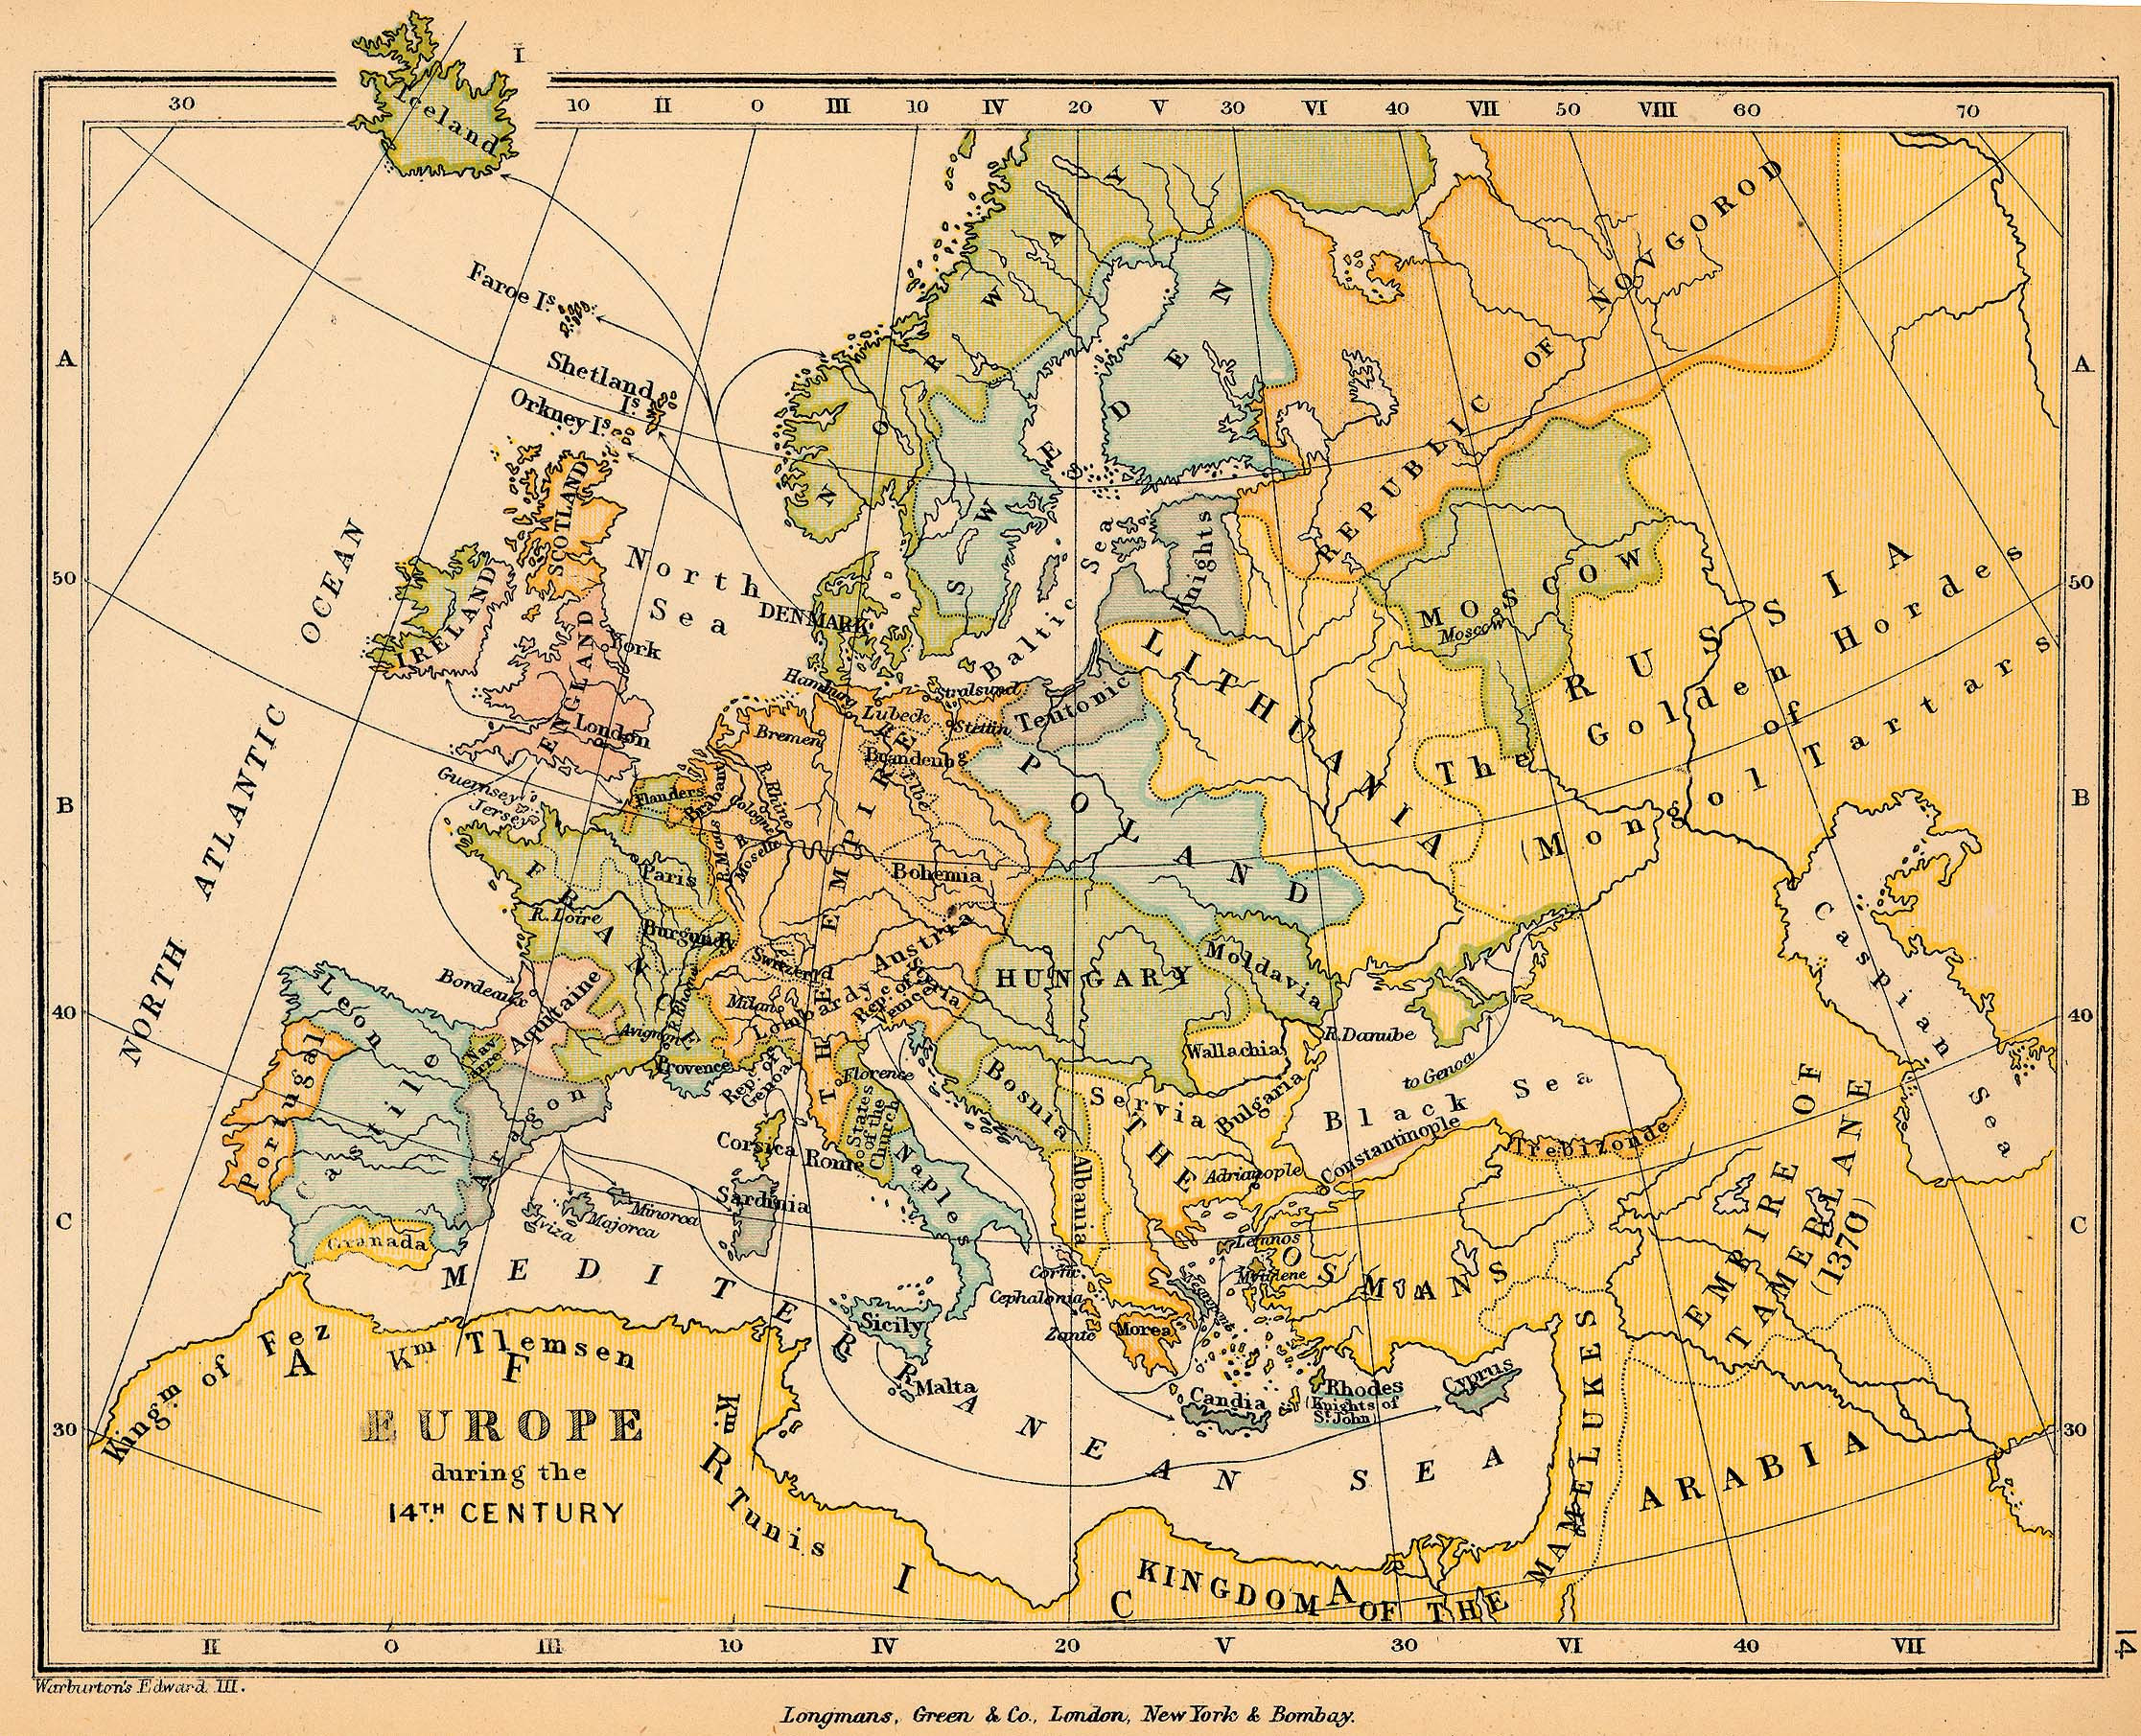 14th Century Middle Ages Europe Map Worksheet